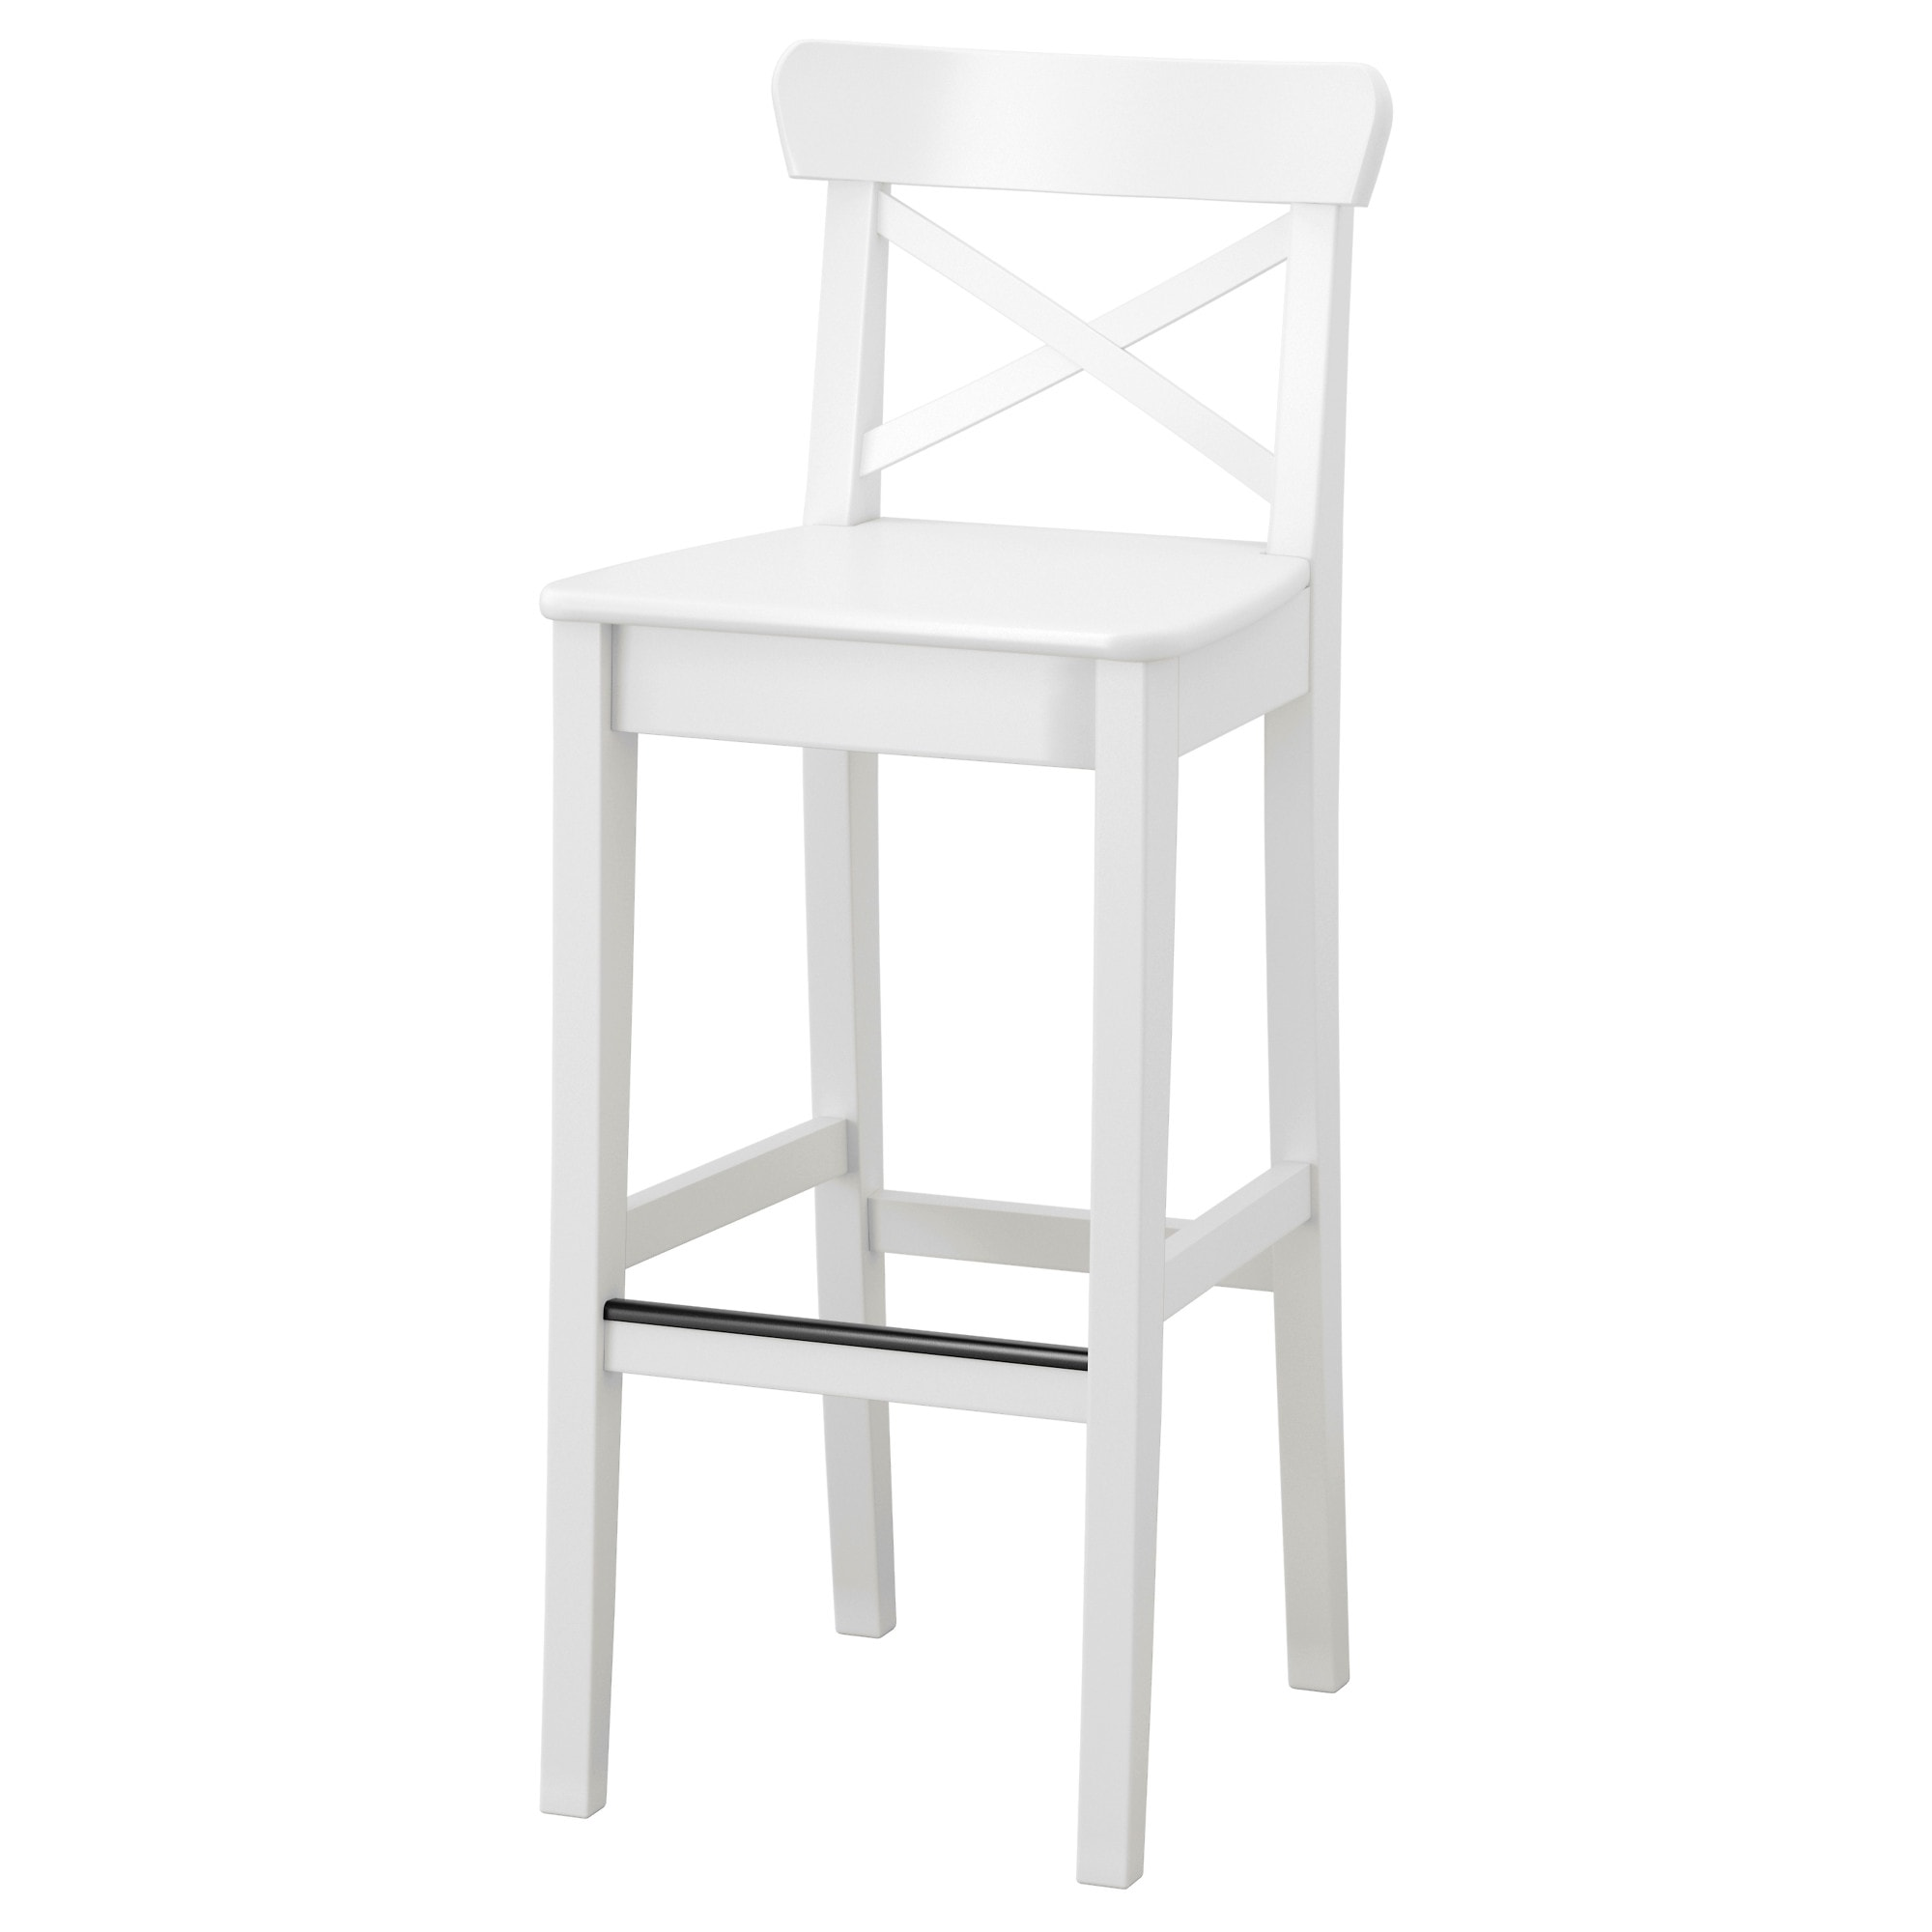 ingolf bar stool with backrest white tested for 220 lb width 15 3